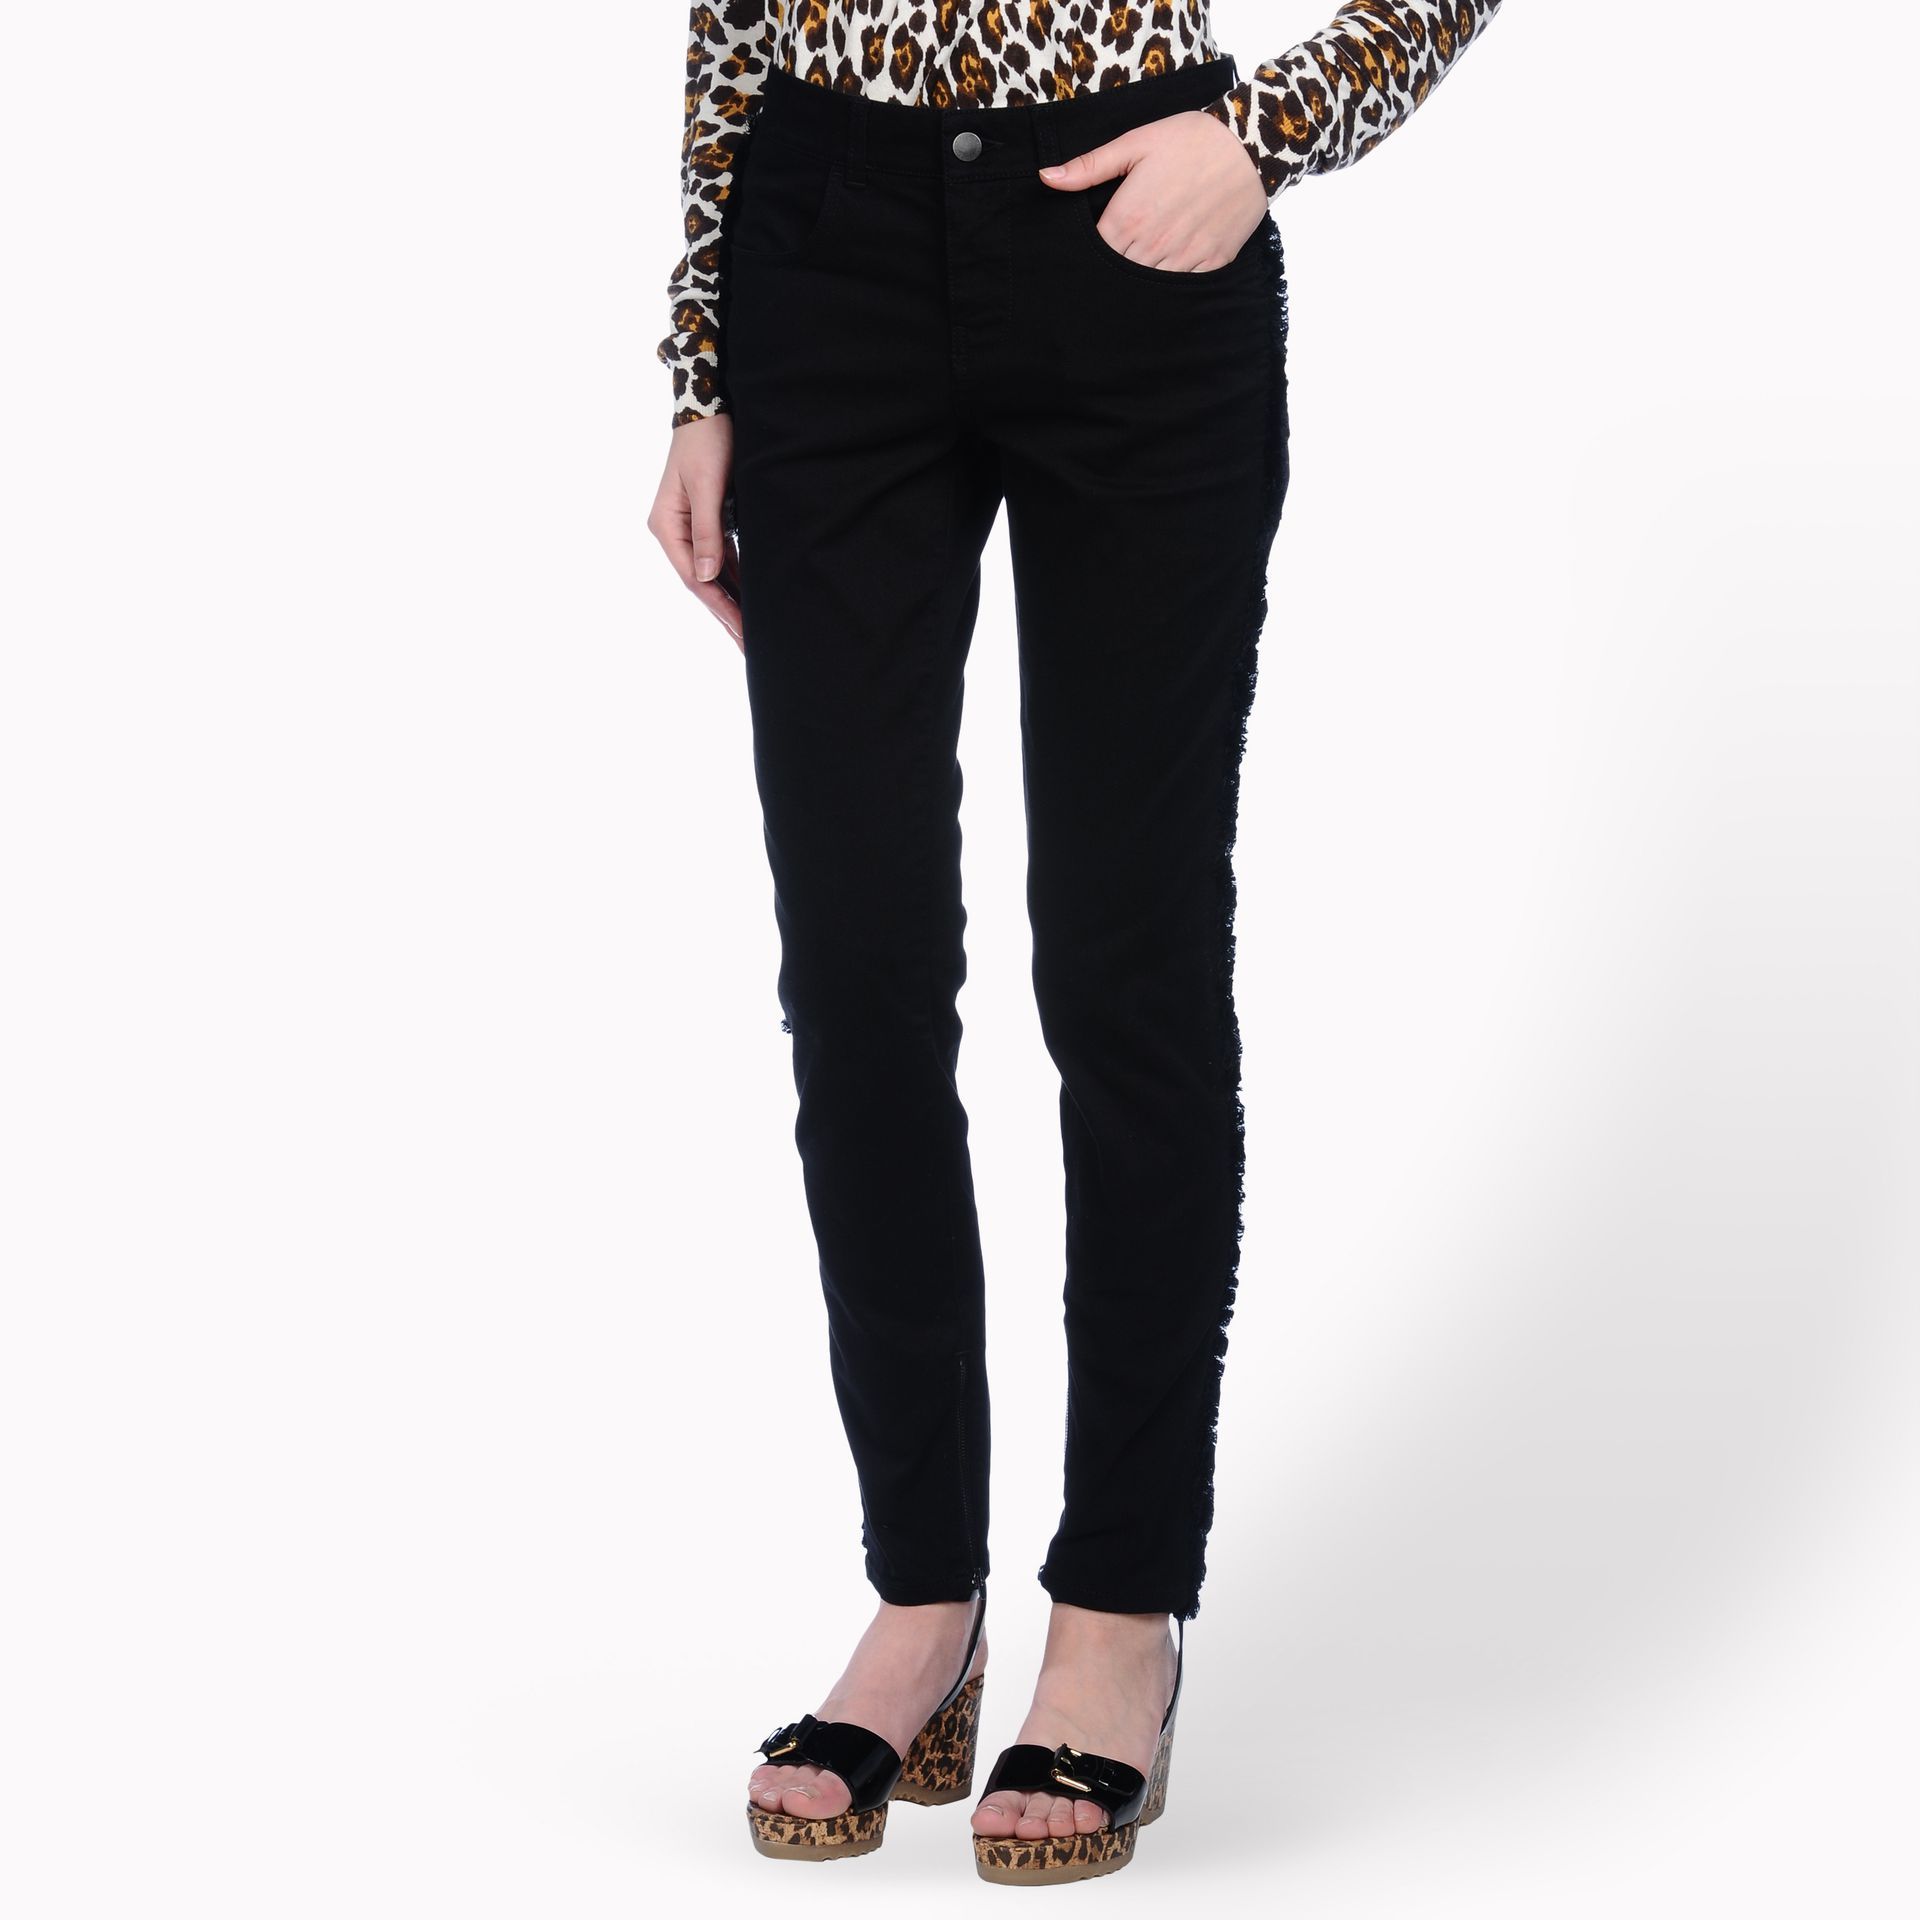 Sale Inexpensive Get To Buy For Sale skinny jeans - Black Stella McCartney Clearance 100% Authentic Clearance Recommend Reliable O8lSG